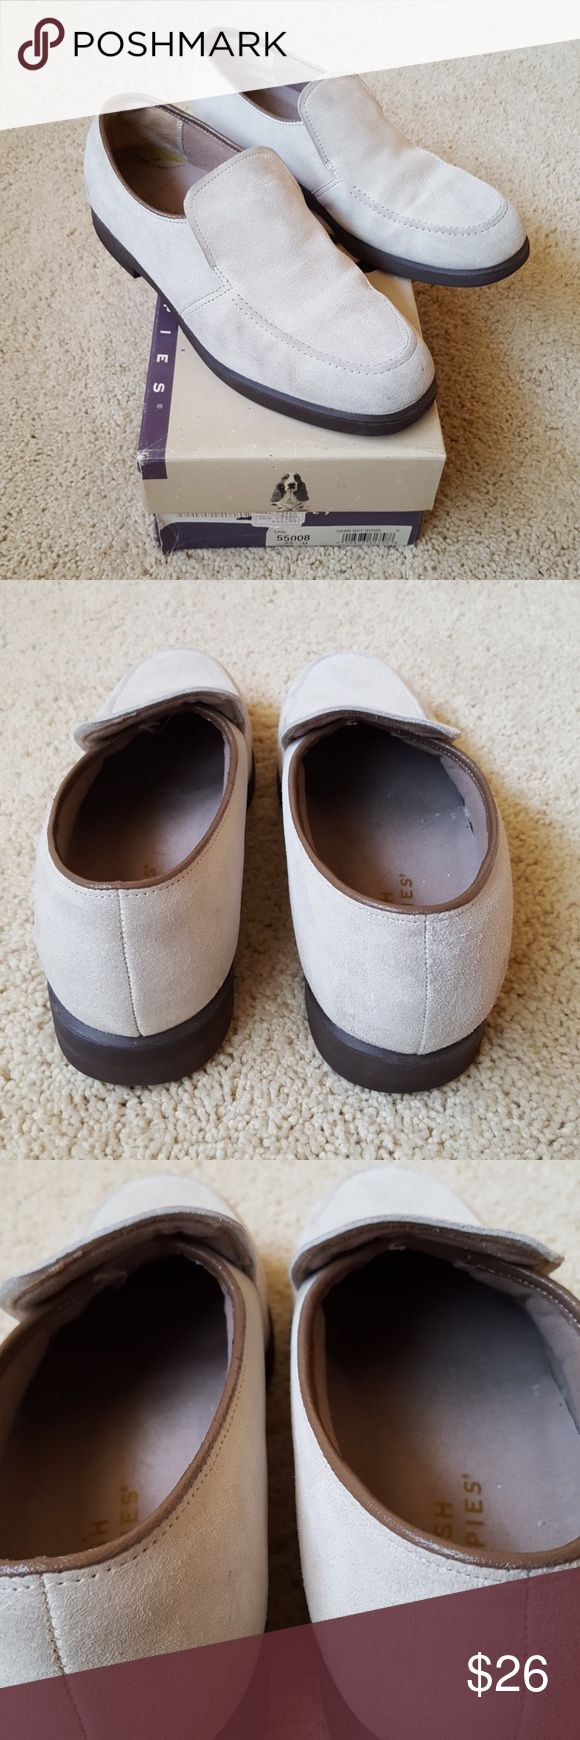 Hush Puppies Loafers in Weather Tight Suede Comfy vintage loafers from Hush Puppies in their weather tight suede; color is dawn white riverbuck.  Generally good condition - some scuffing, and wear on inside (see pics). Comes with care kit (brush, dry cleaning bar, and buck bag) from a smoke- and pet-free home. Hush Puppies Shoes Flats & Loafers